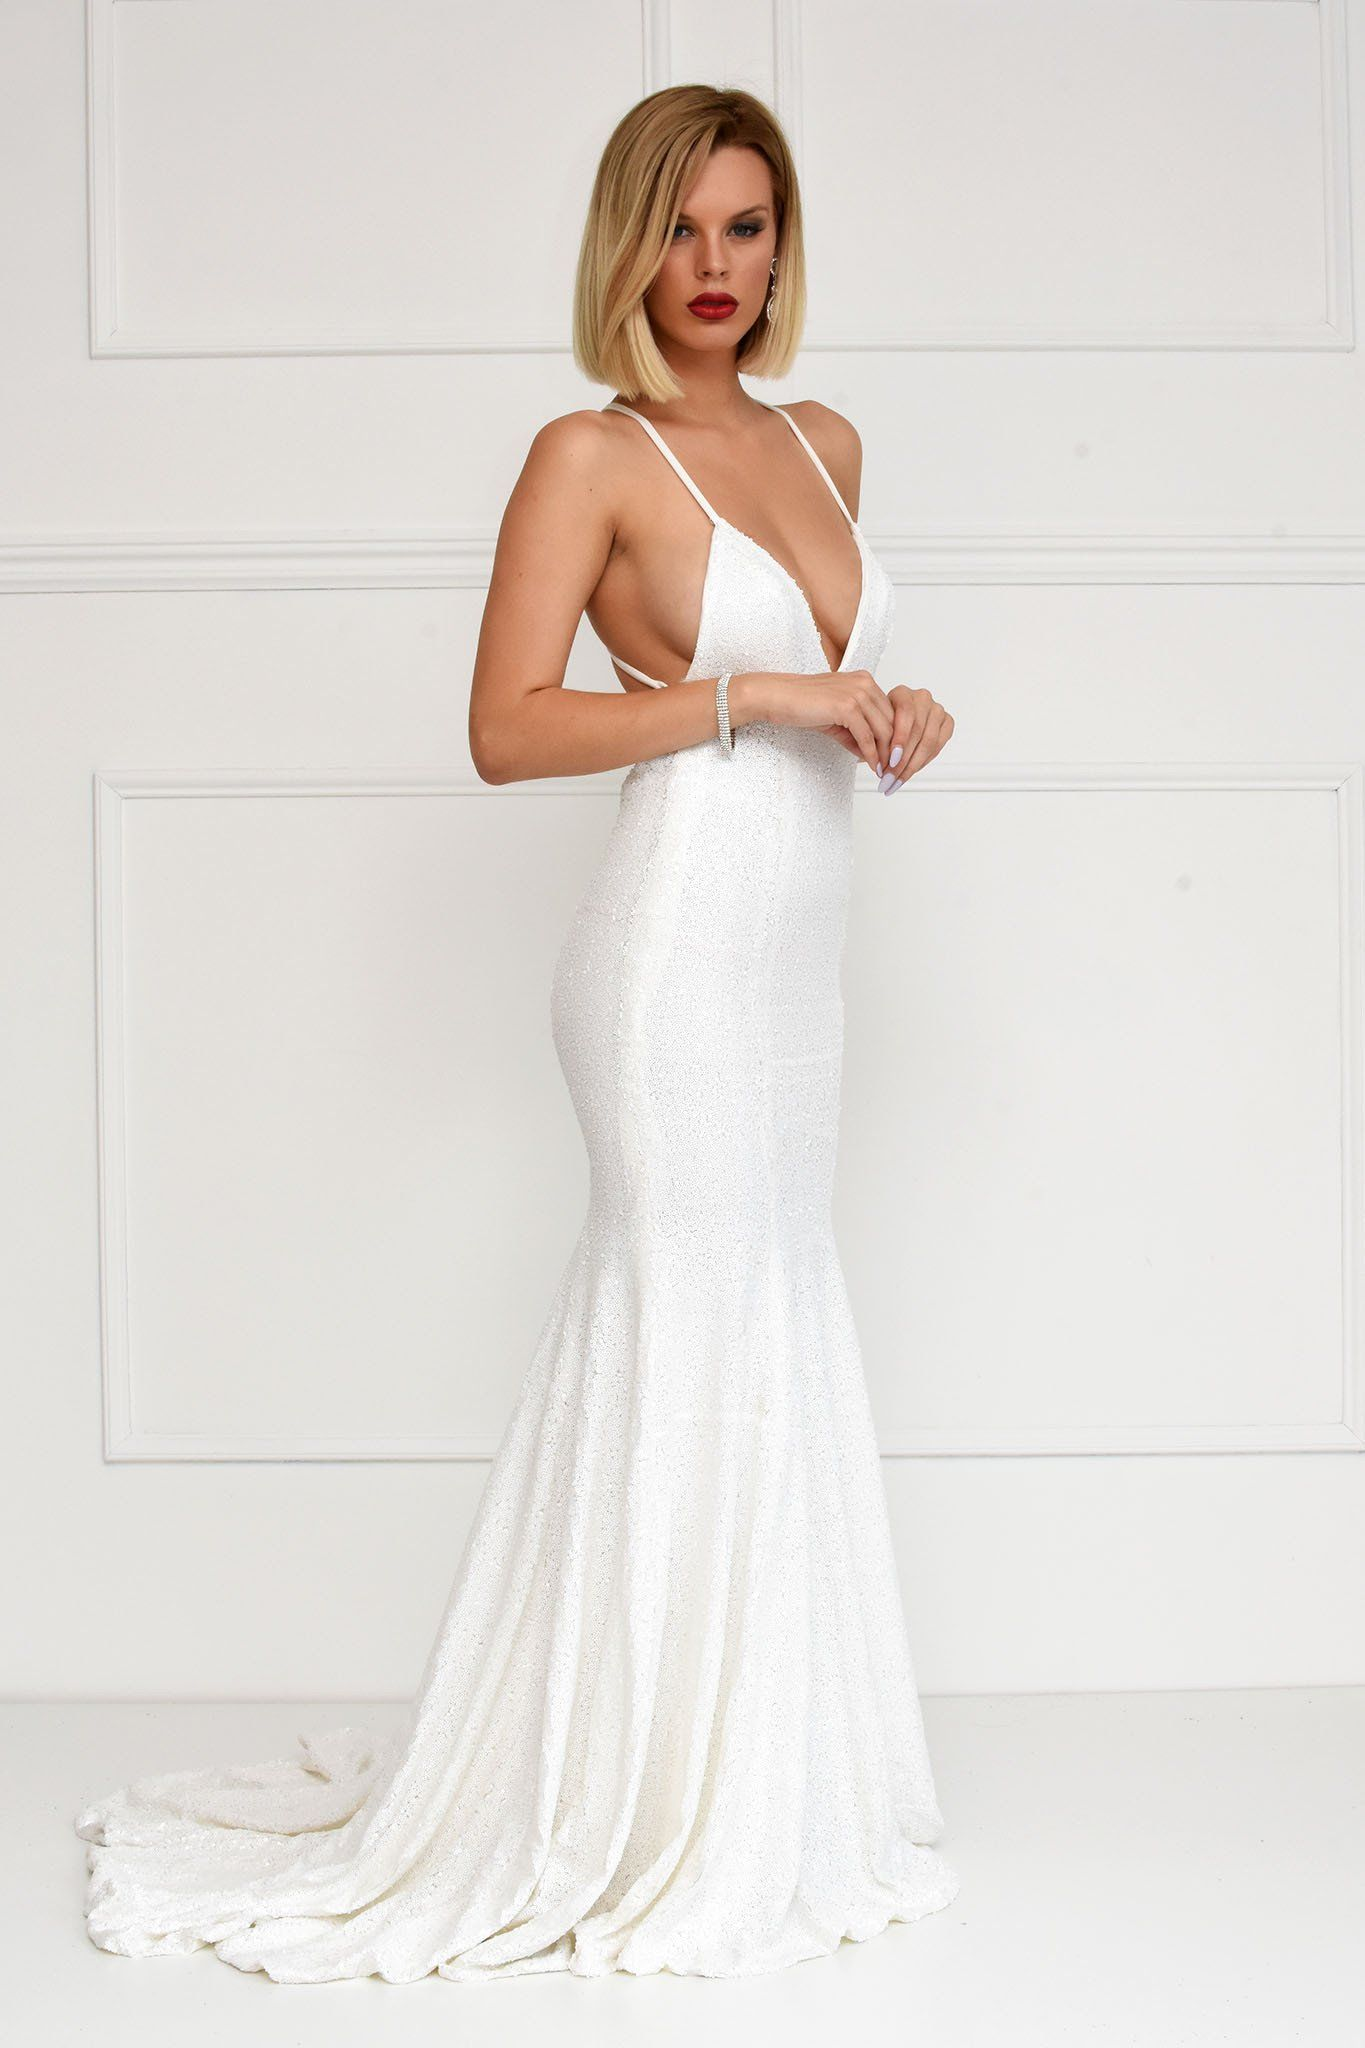 Estelle Gown - White – Noodz Boutique